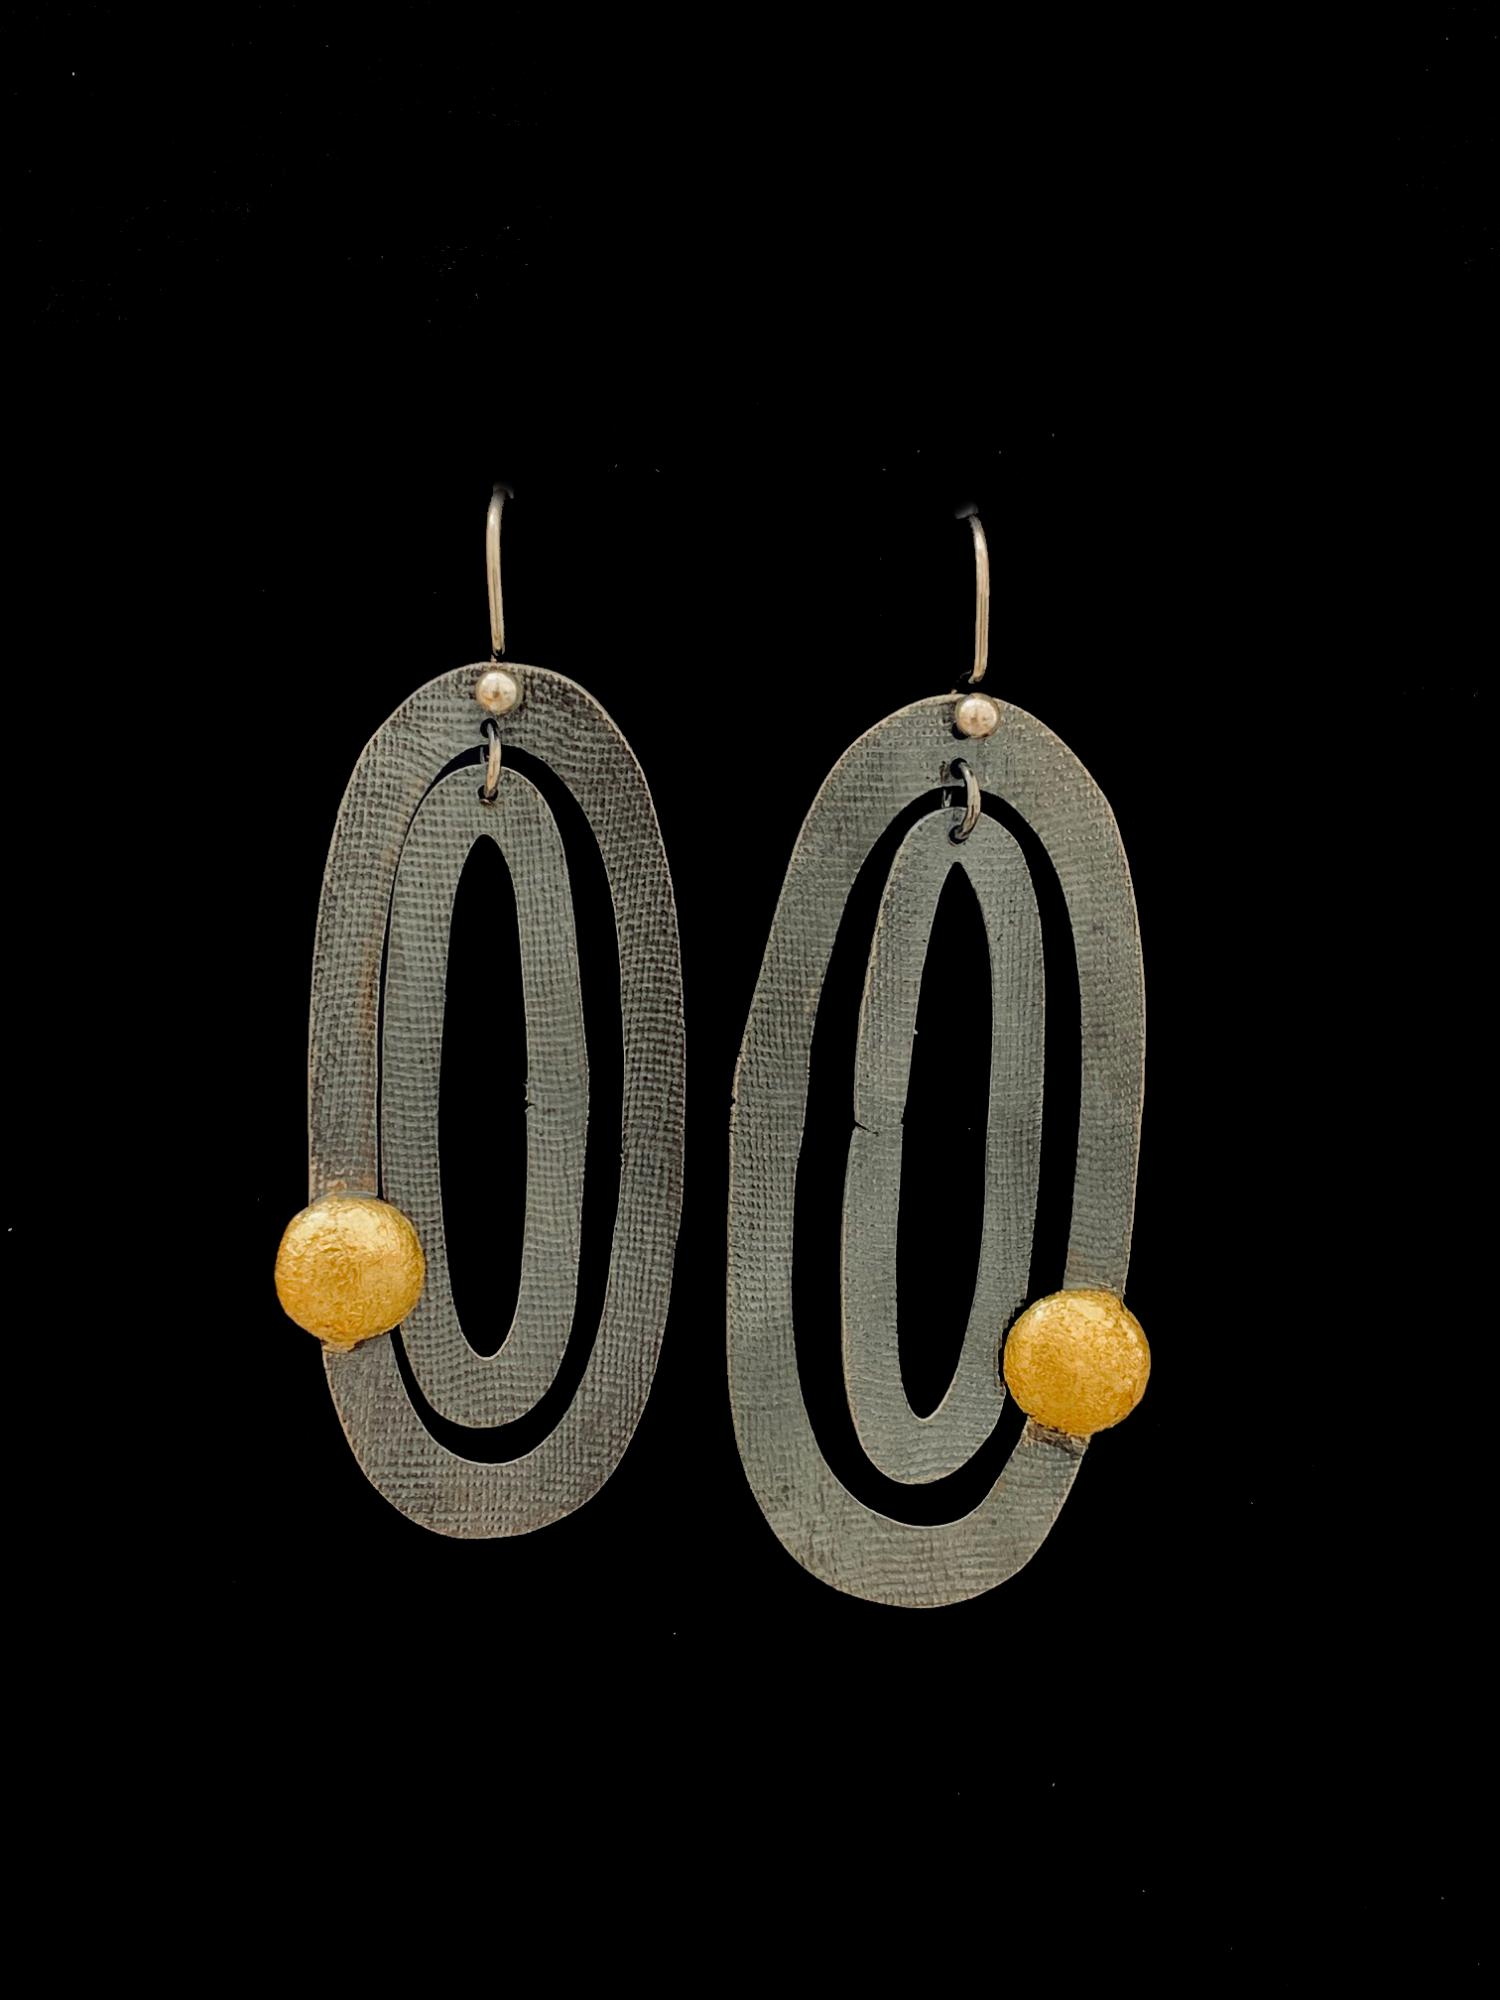 Oxidized Sterling Silver Earrings with Gold Leaf and Sterling Hooks. - Sold